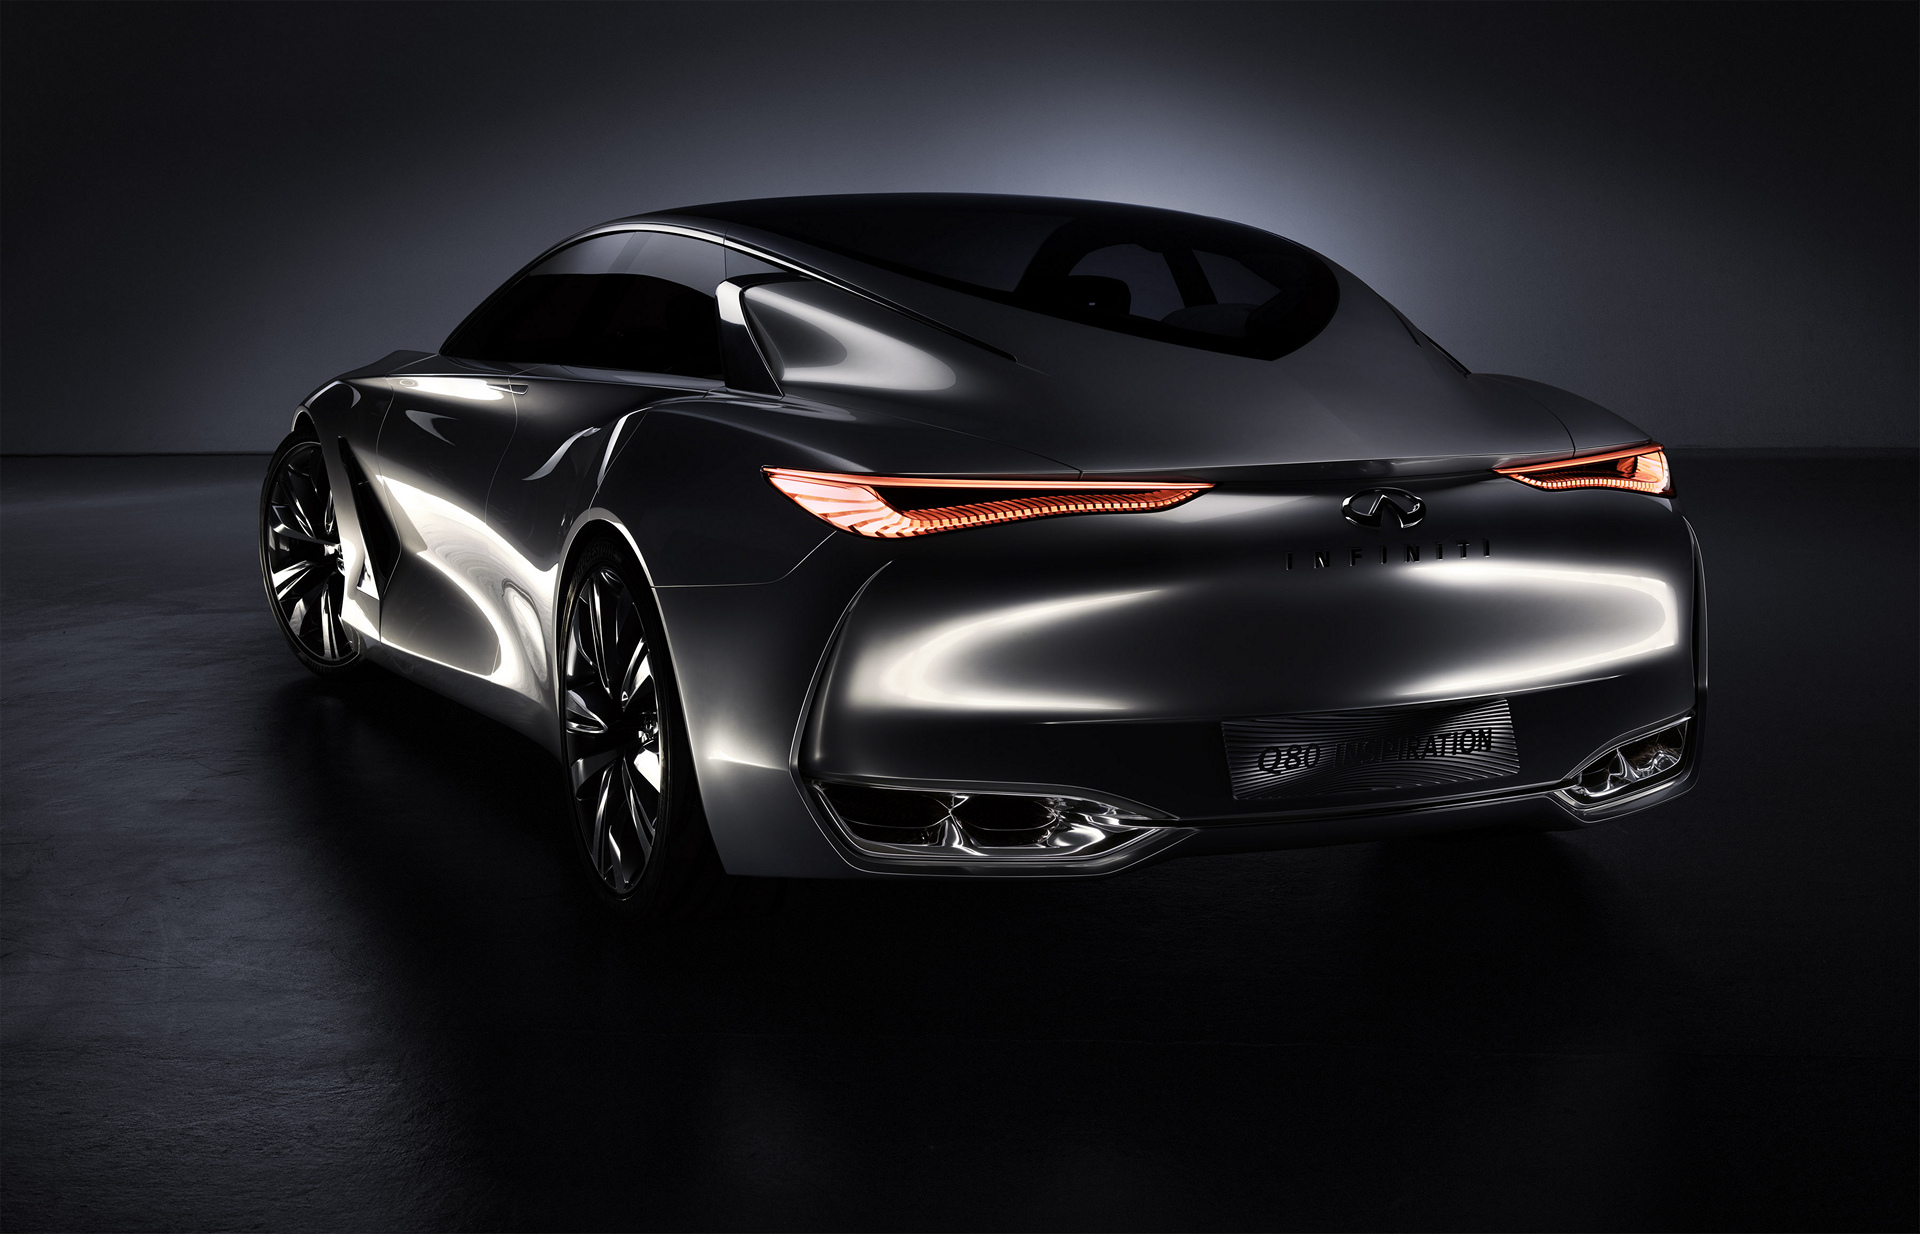 Infiniti Q80 Inspiration Concept © Nissan Motor Co., Ltd.